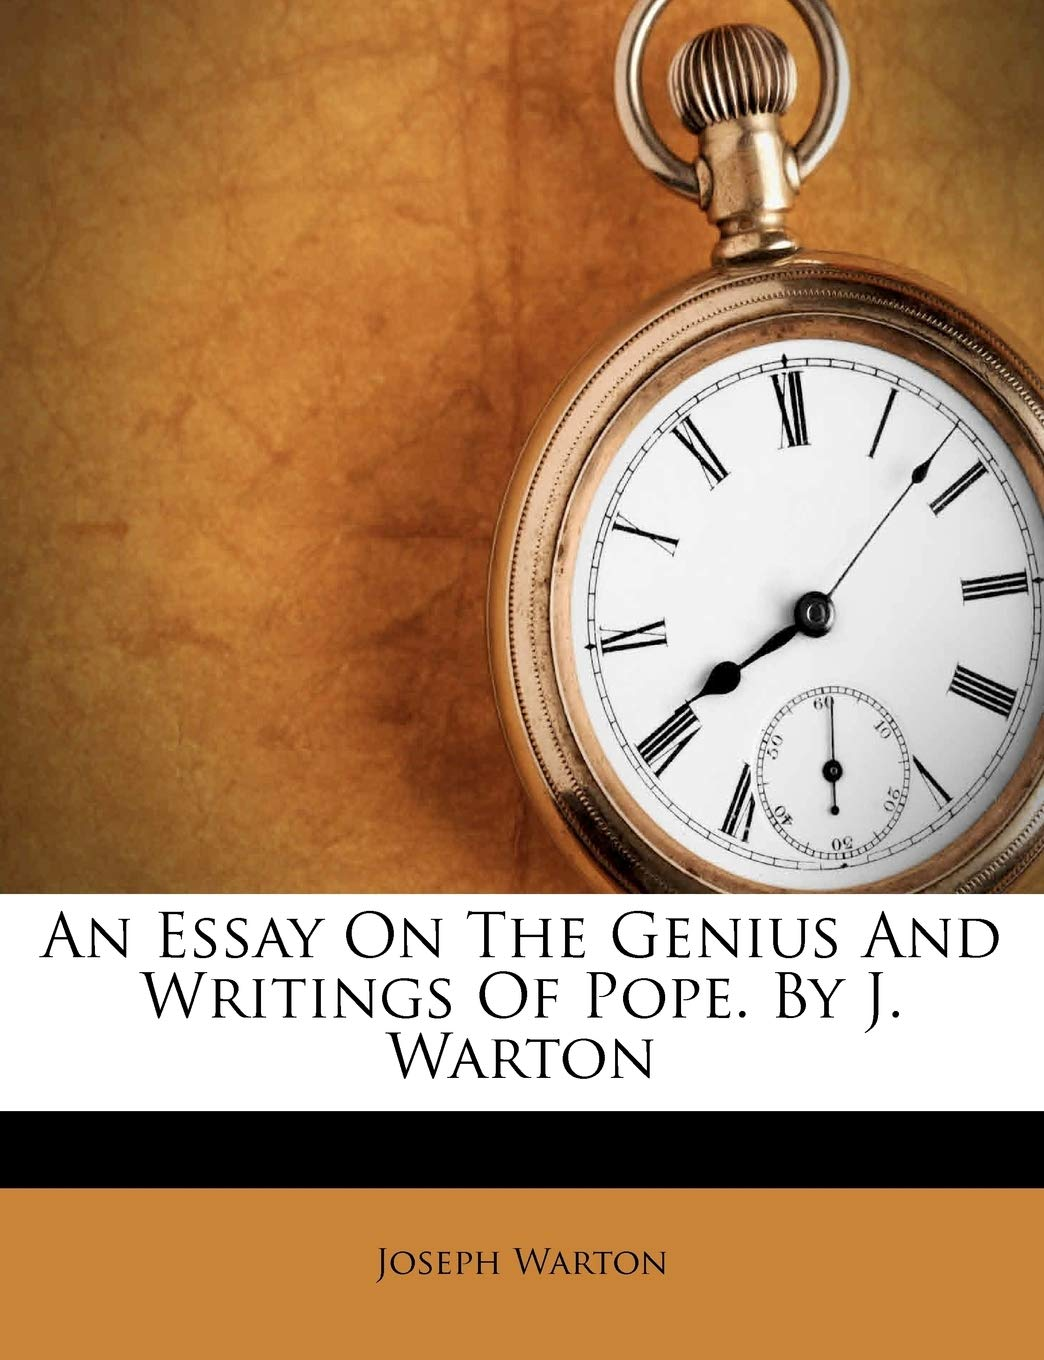 essay on the genius and writings of pope